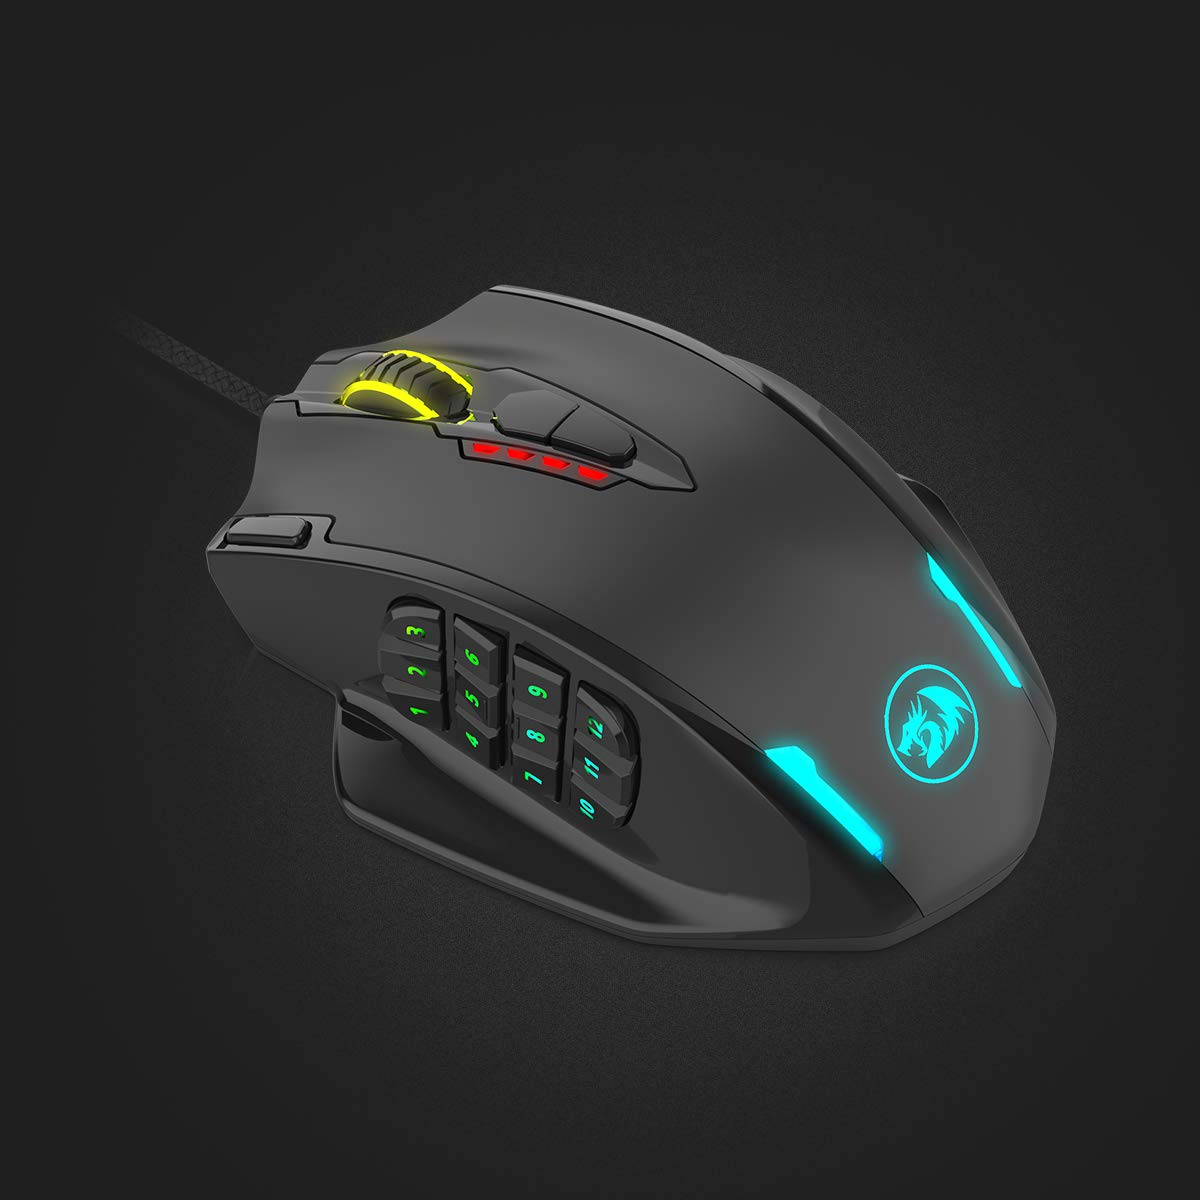 Redragon Impact RGB LED MMO Mouse with Side Buttons Laser Wired Gaming Mouse with 12,400DPI, High Precision, 19 Programmable Mouse Buttons by Redragon (Image #1)